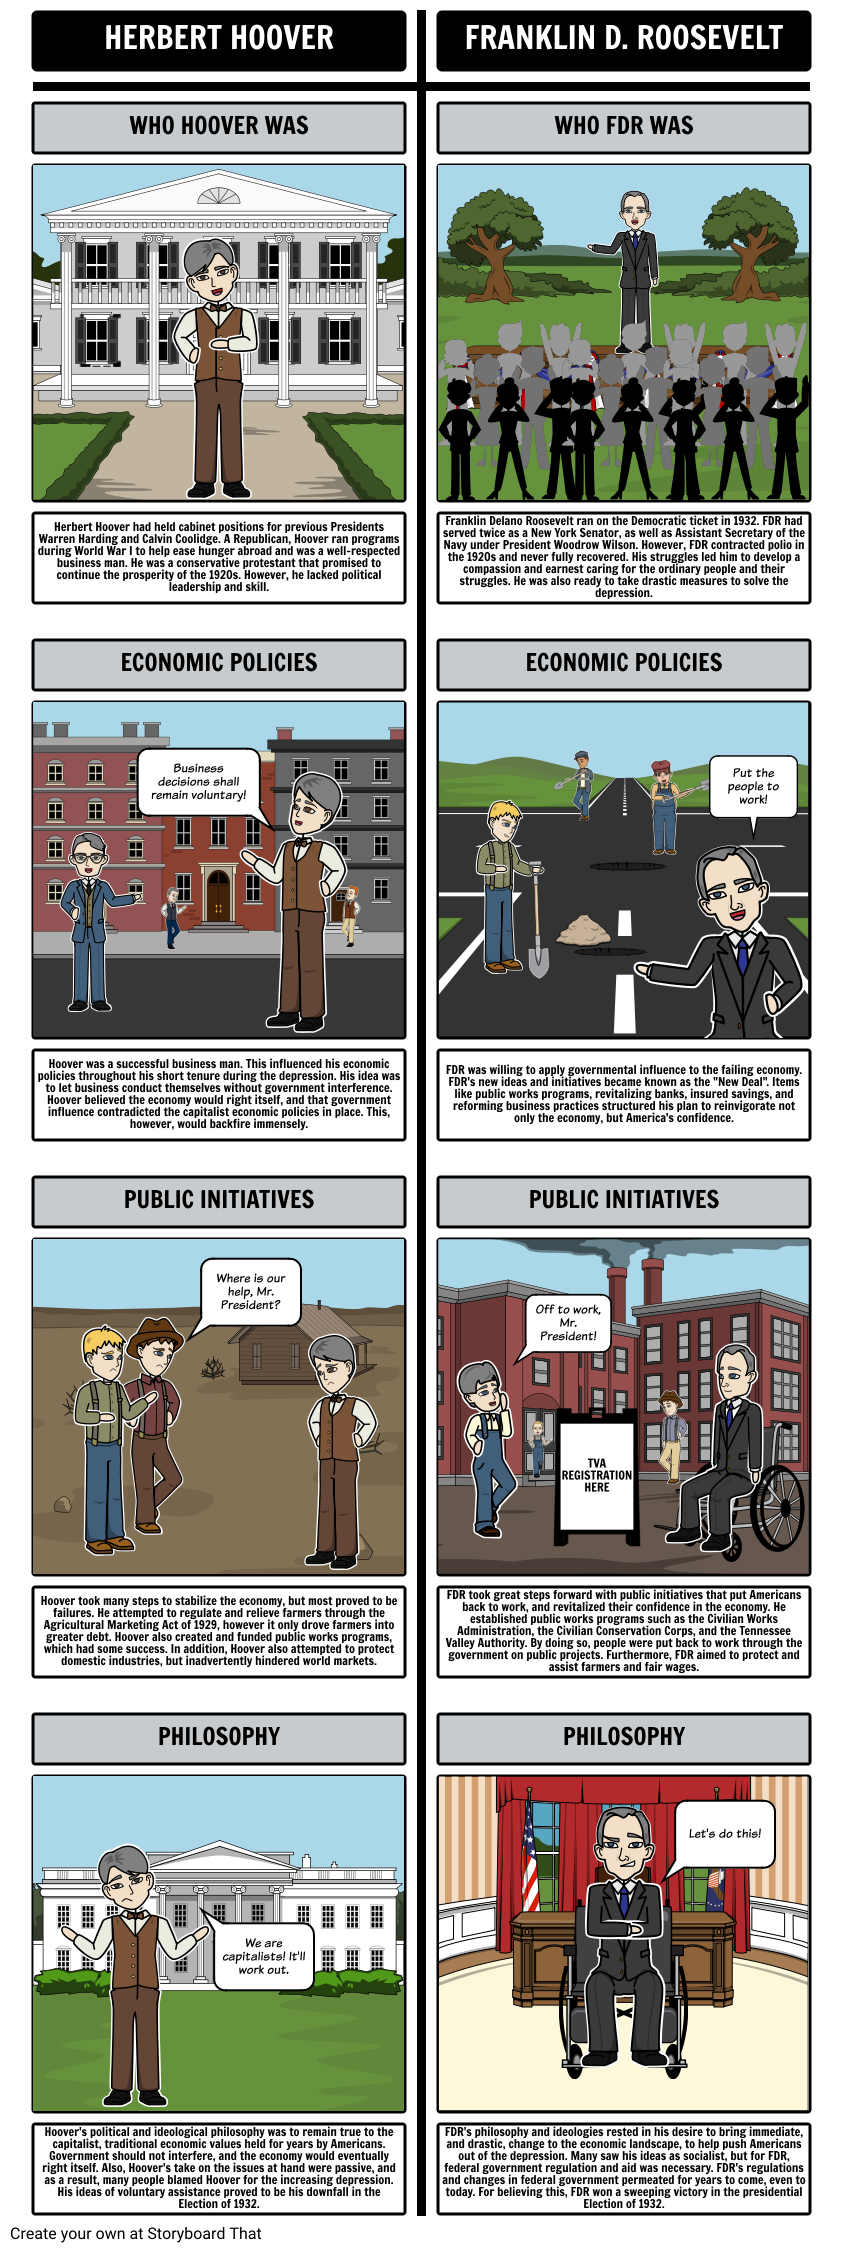 hoover vs roosevelt during depression Hoover vs fdr: reactions to the great depression - free download as word doc (doc), pdf the business and banking communities and was the first federal institution created to intervene directly in the economy during -hoover dam roosevelt philosophy -centralized decision.